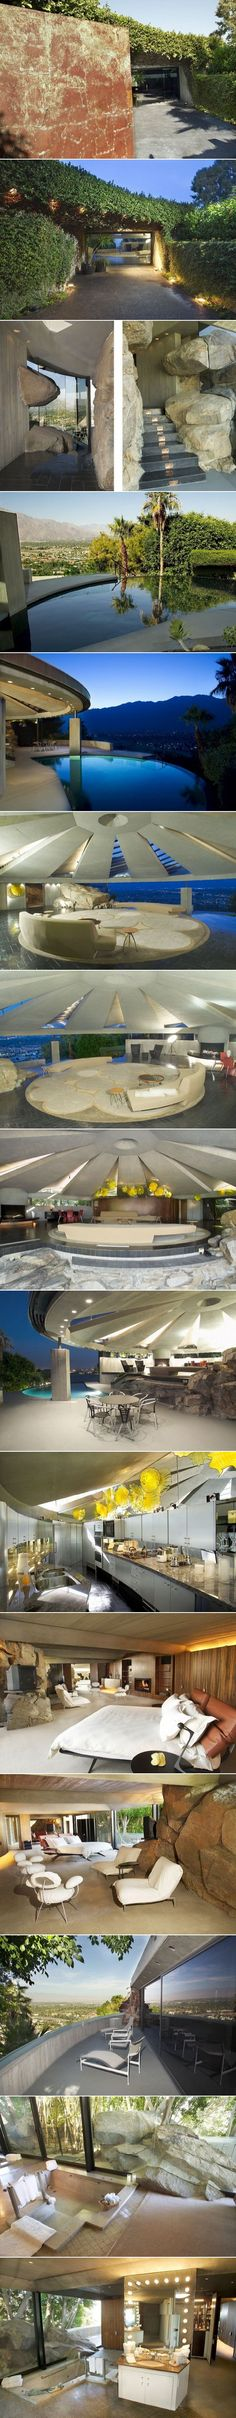 The Elrod House by John Lautner-1968